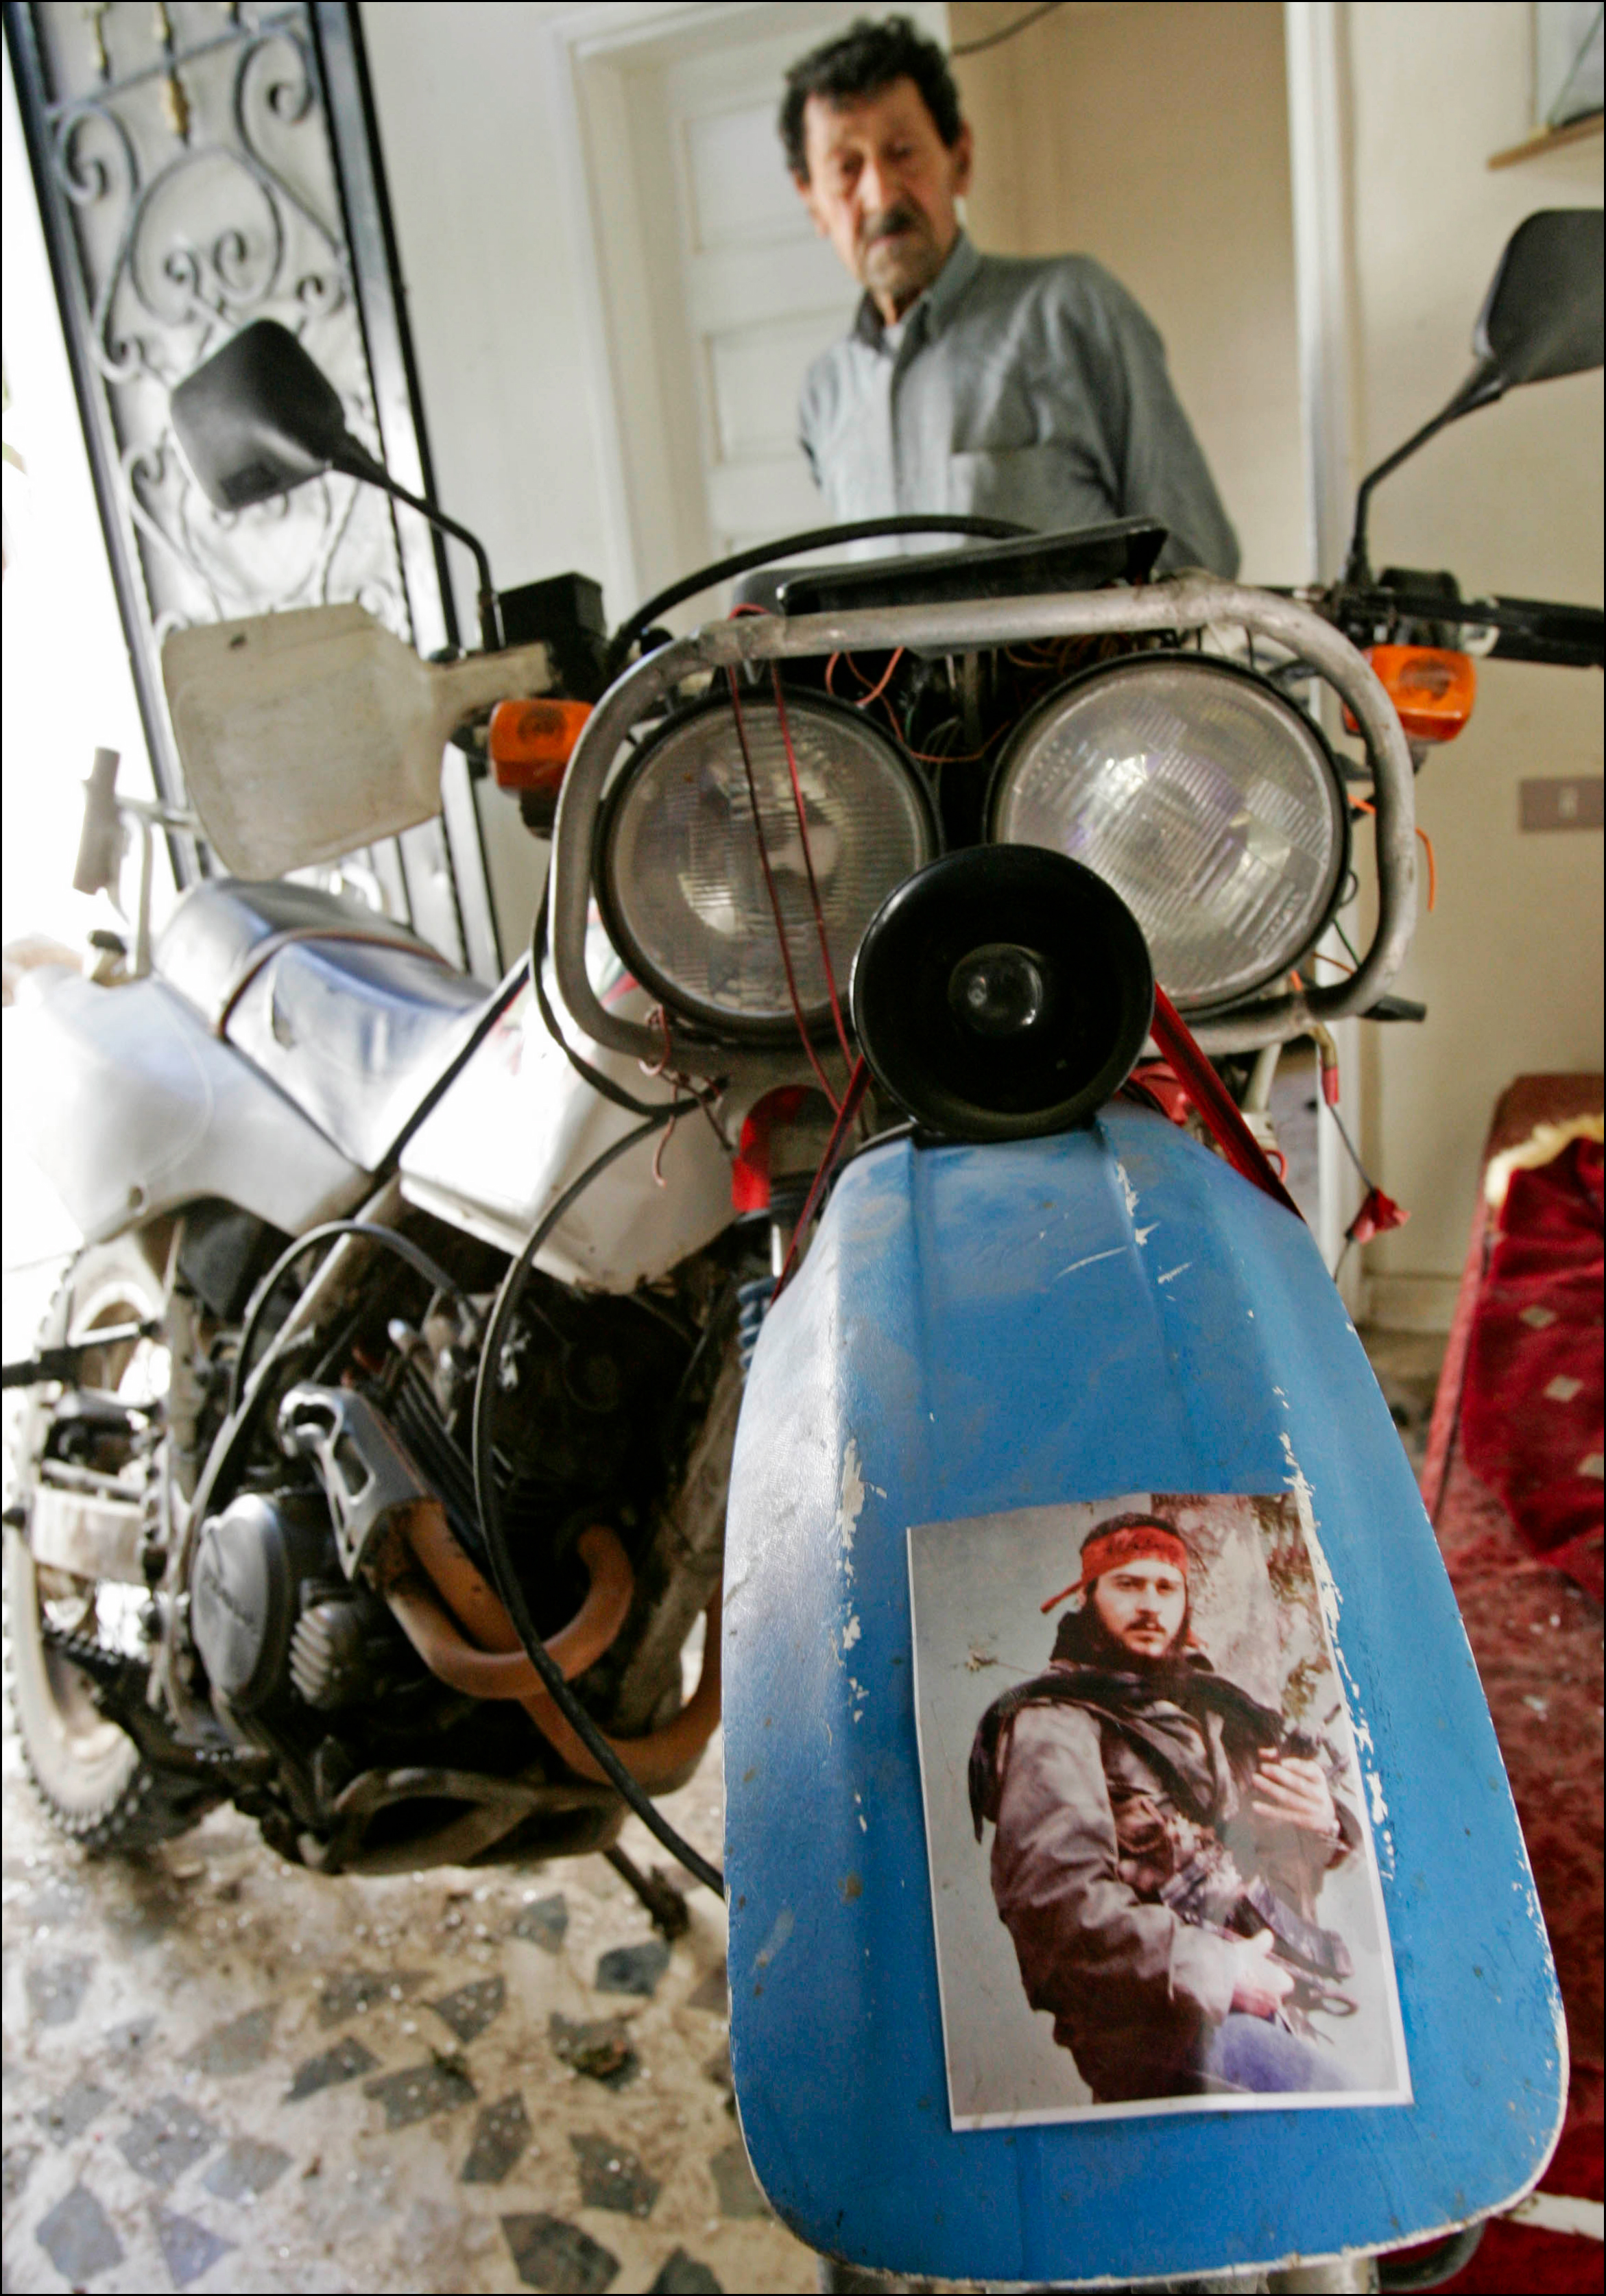 "A relative looks at the motorbike of a Hizbollah fighter standing in the entrance of his home in Aitaroun, 5 kilometers from the border with Israel, a day after a ceasefire agreement between Israel and Lebanon put a temporary end to fighting in the town. The picture glued to his bike shows his cousin, a Hizbollah ""martyr"" who died during an operation against Israeli forces in 1986. Many Lebanese celebrated what they perceived as the win of Hizbollah after a month long war with Israel that lead to over 1500 civilian deaths in Lebanon and vast destruction of the country's infrastructure from heavy Israeli bombardments."